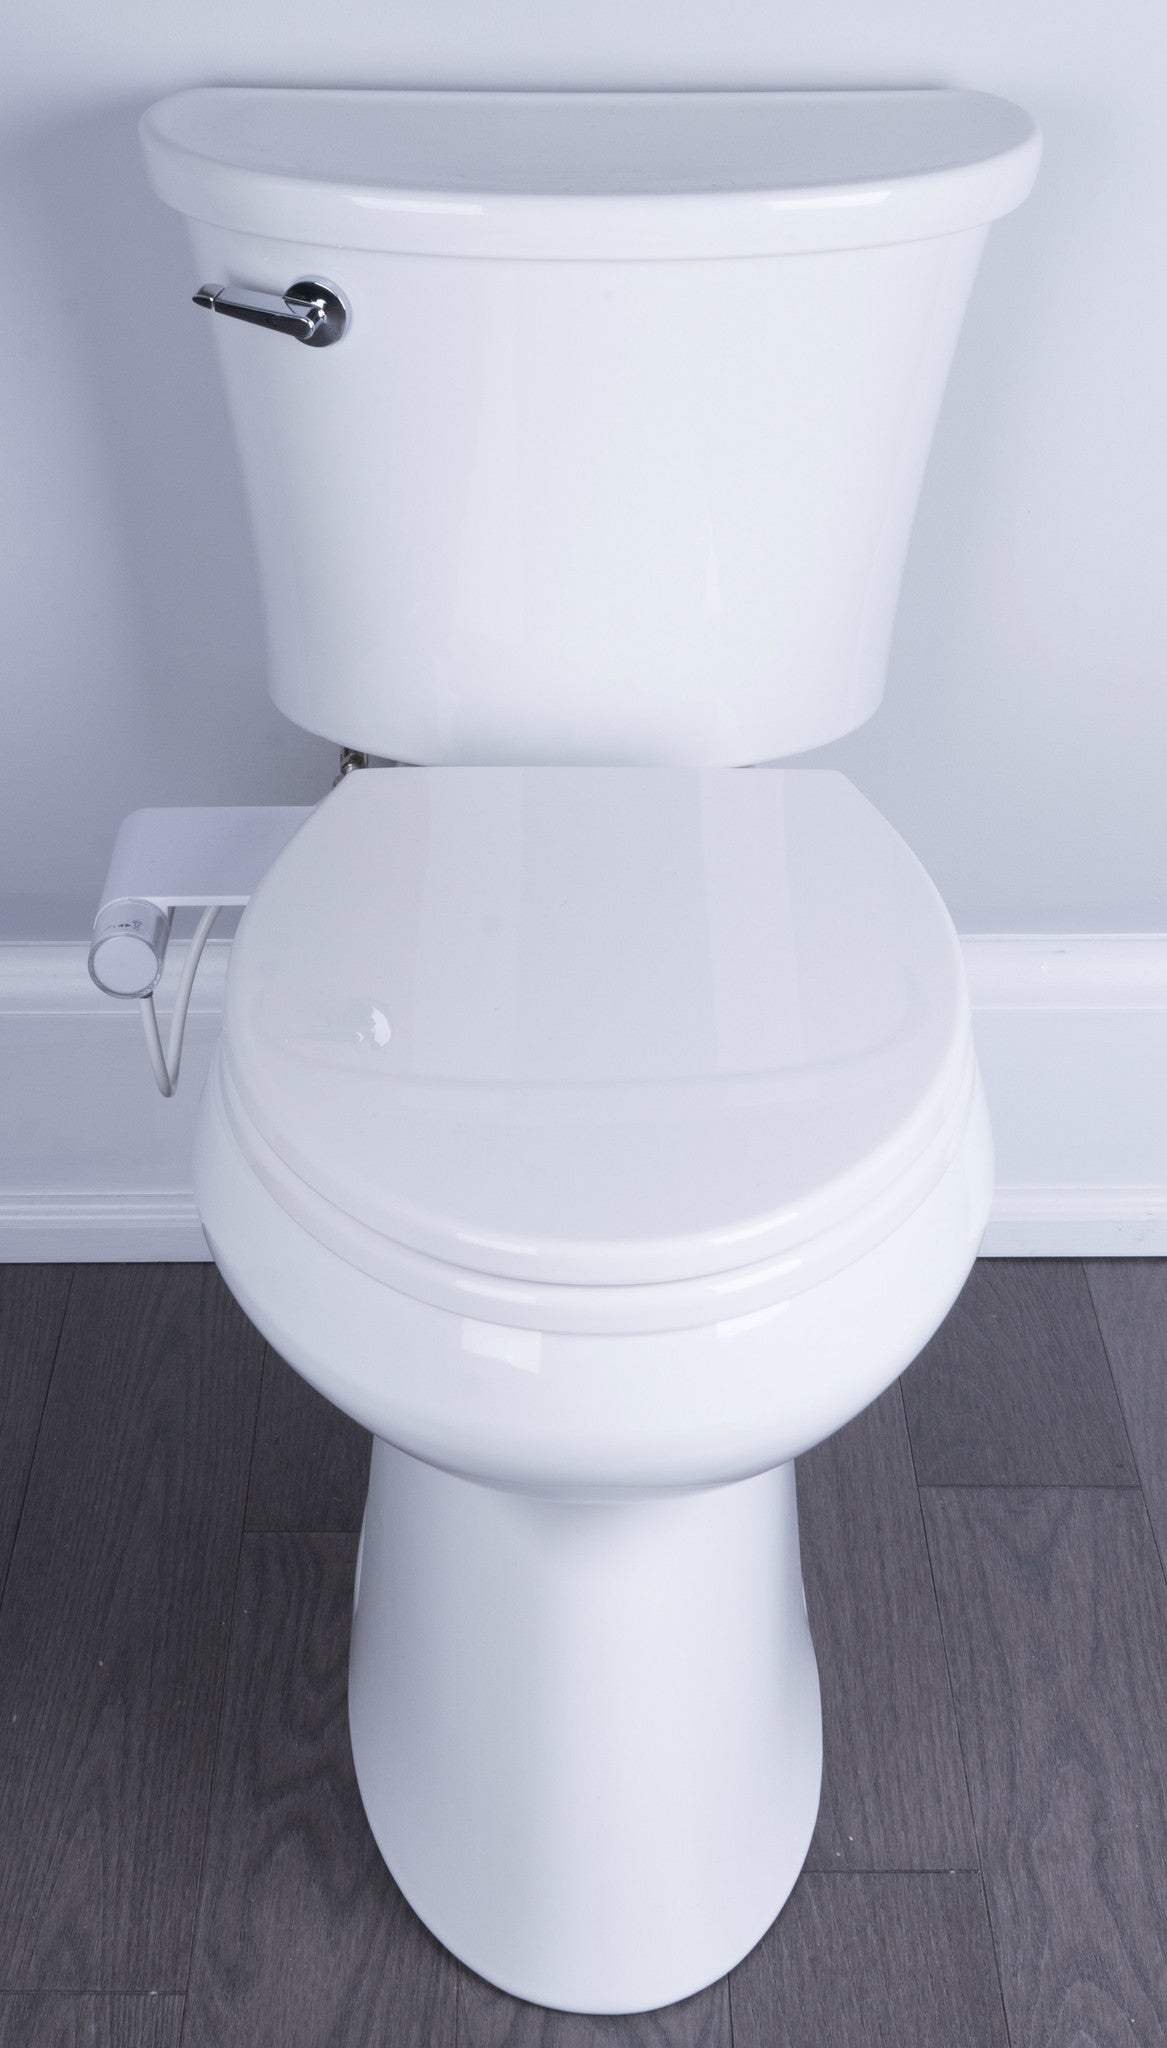 sleek bidet attachment